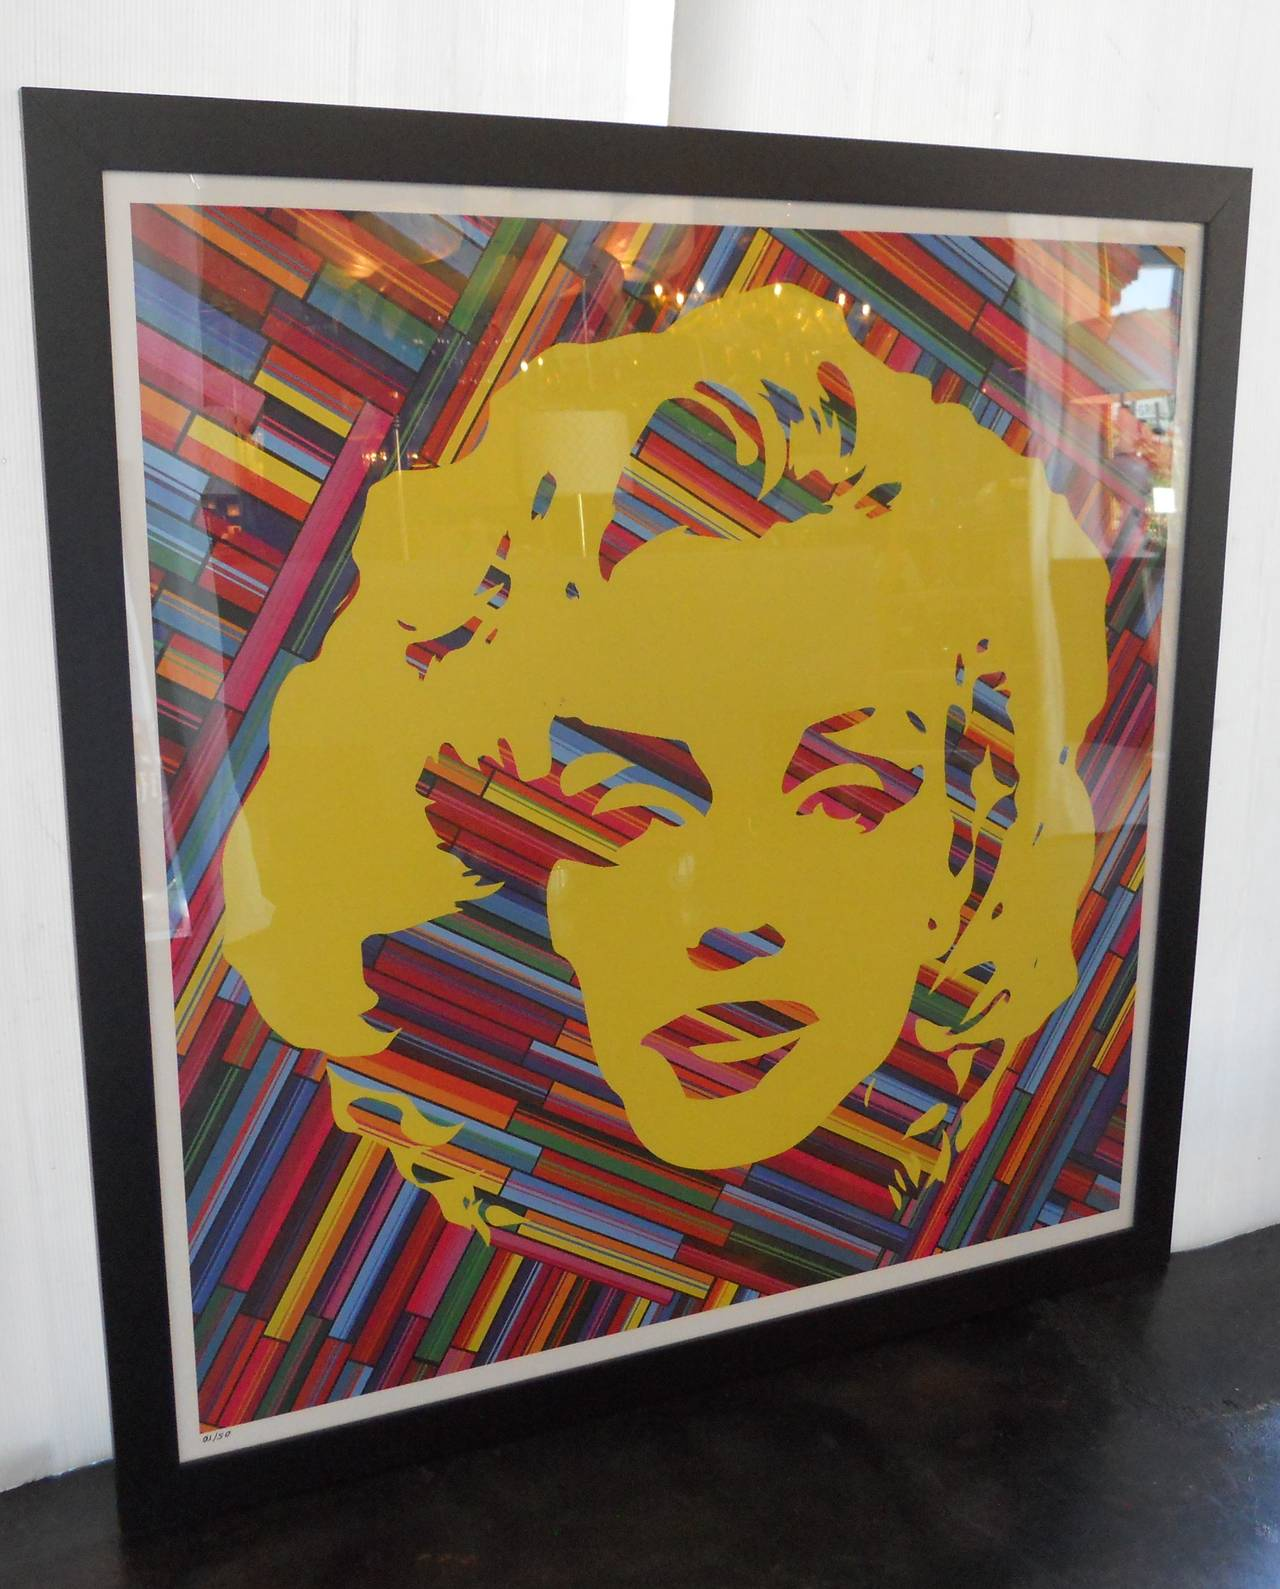 Set of Two Mauro Oliveira Marilyn Monroe Lithographs For Sale at 1stdibs